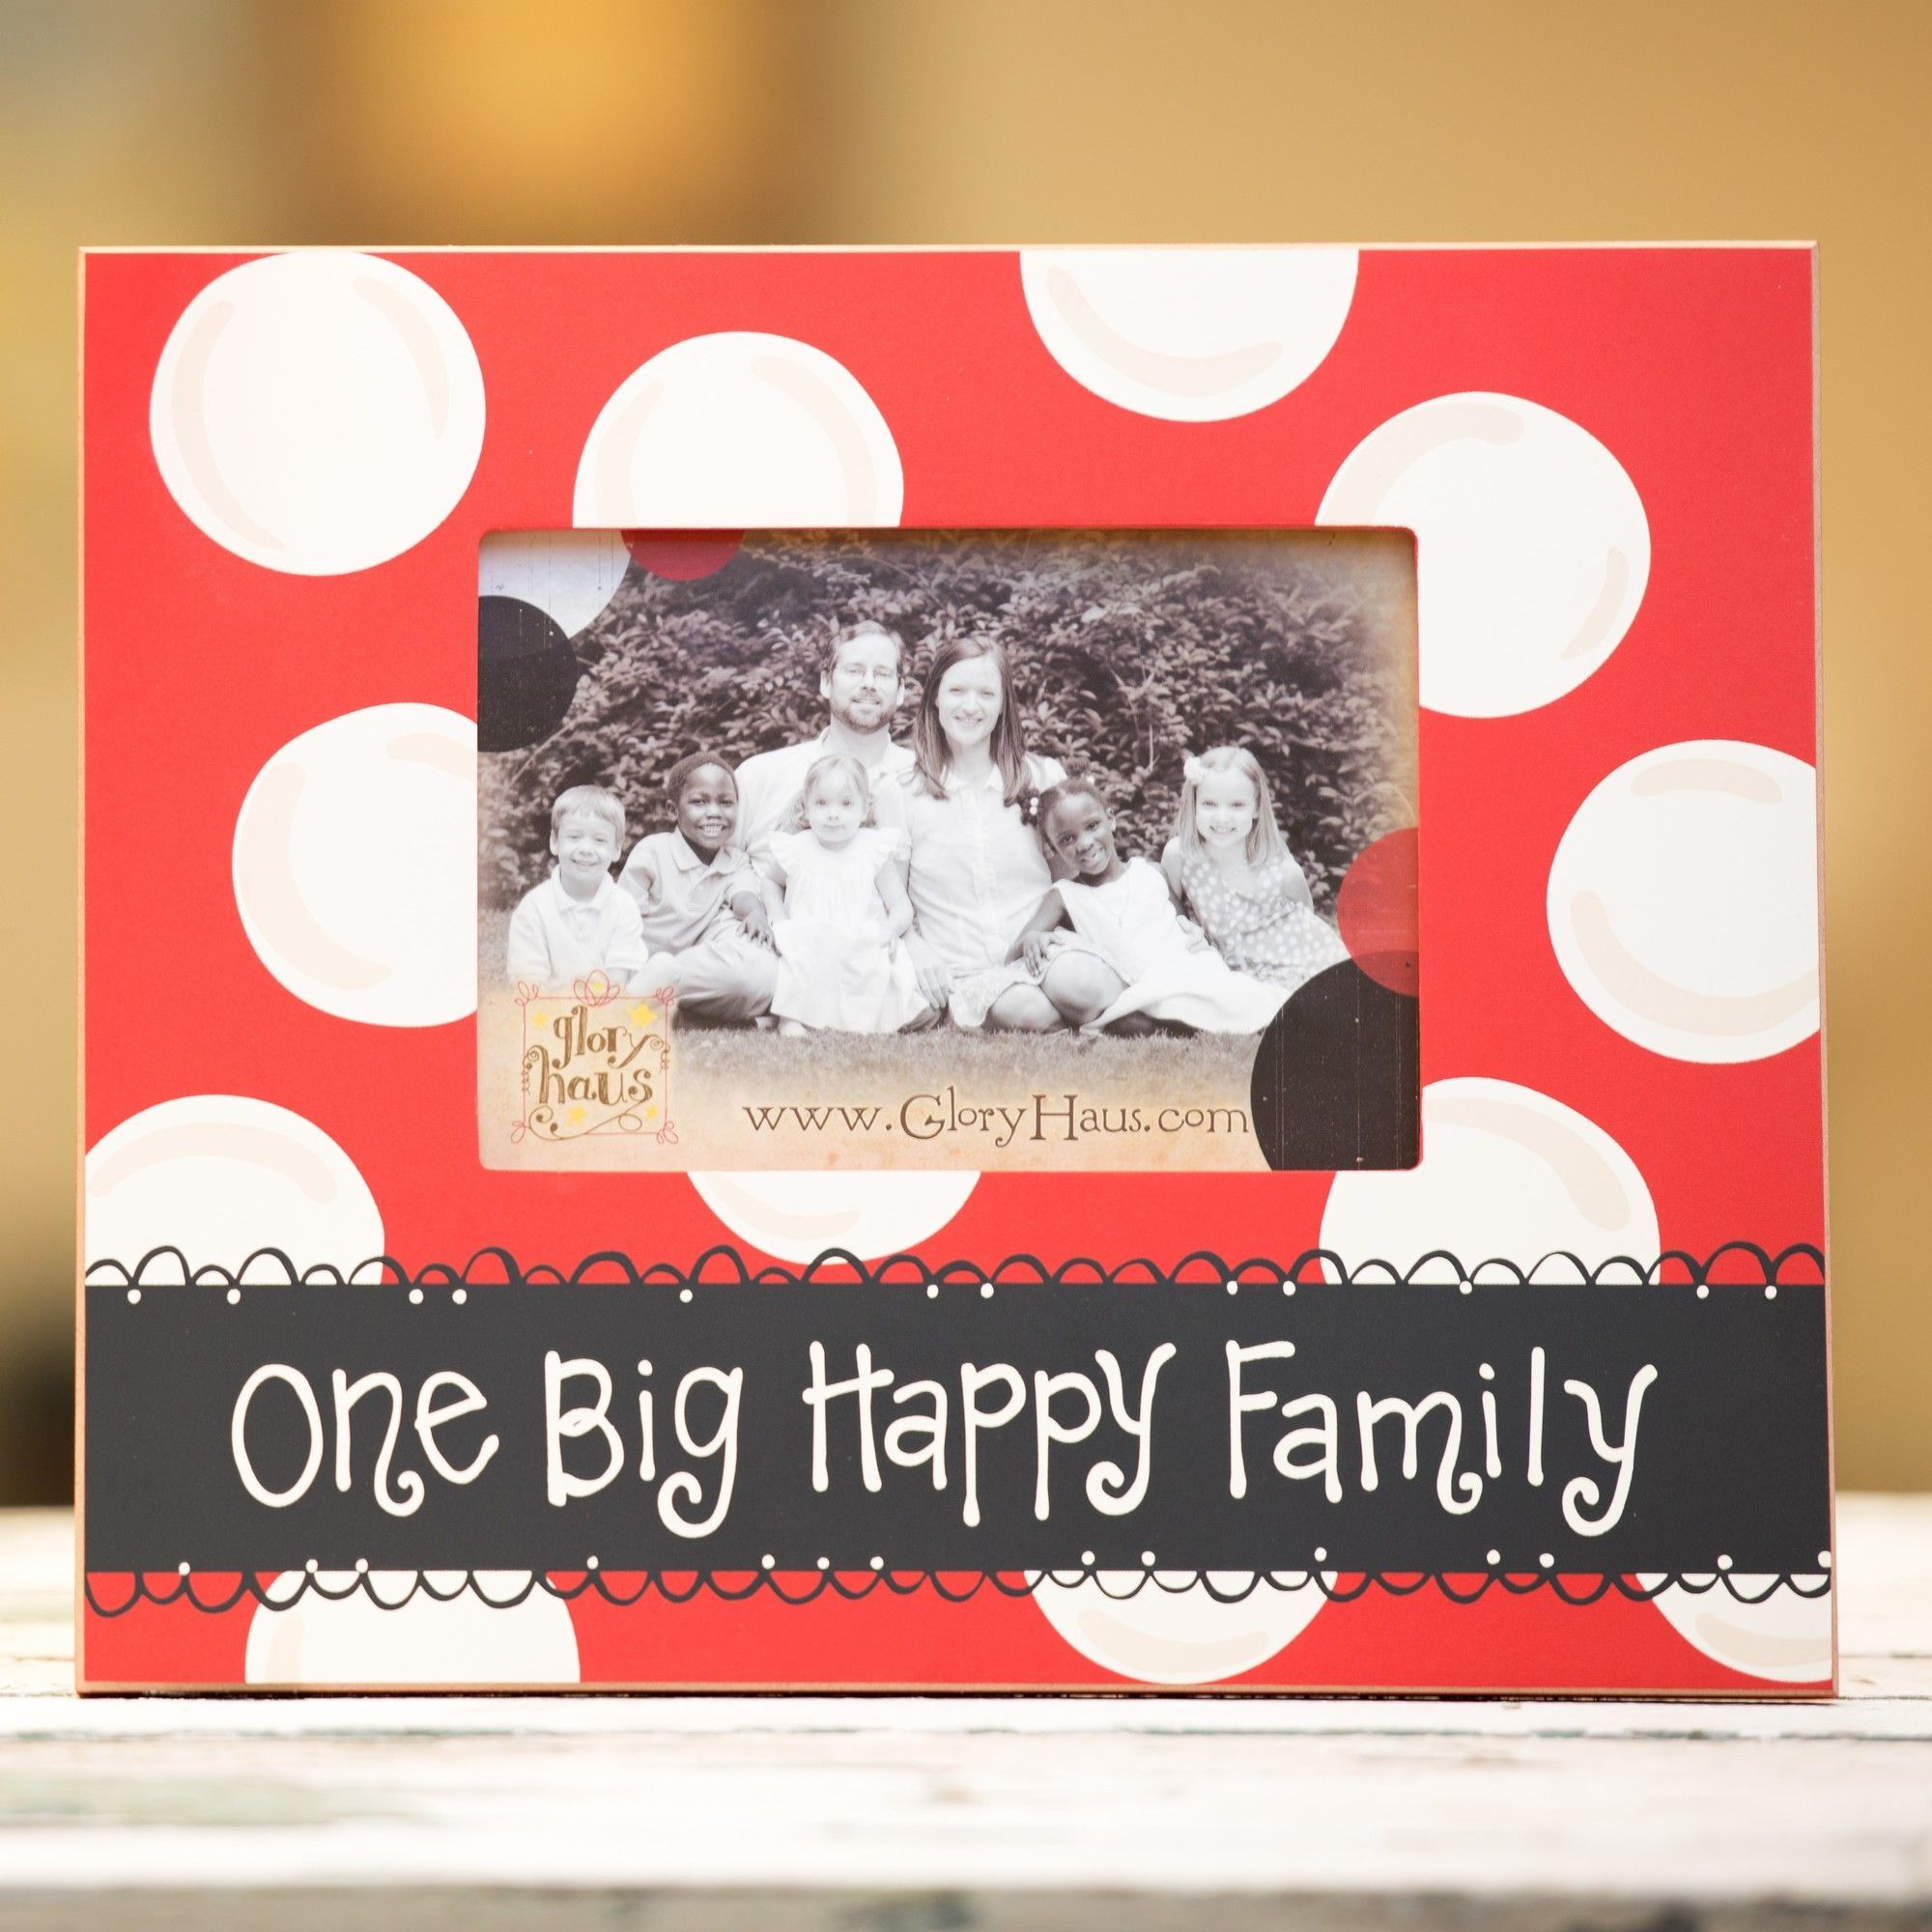 Glory Haus One Big Happy Family Picture Frame Happy Family Pictures Family Picture Frames Family Frames